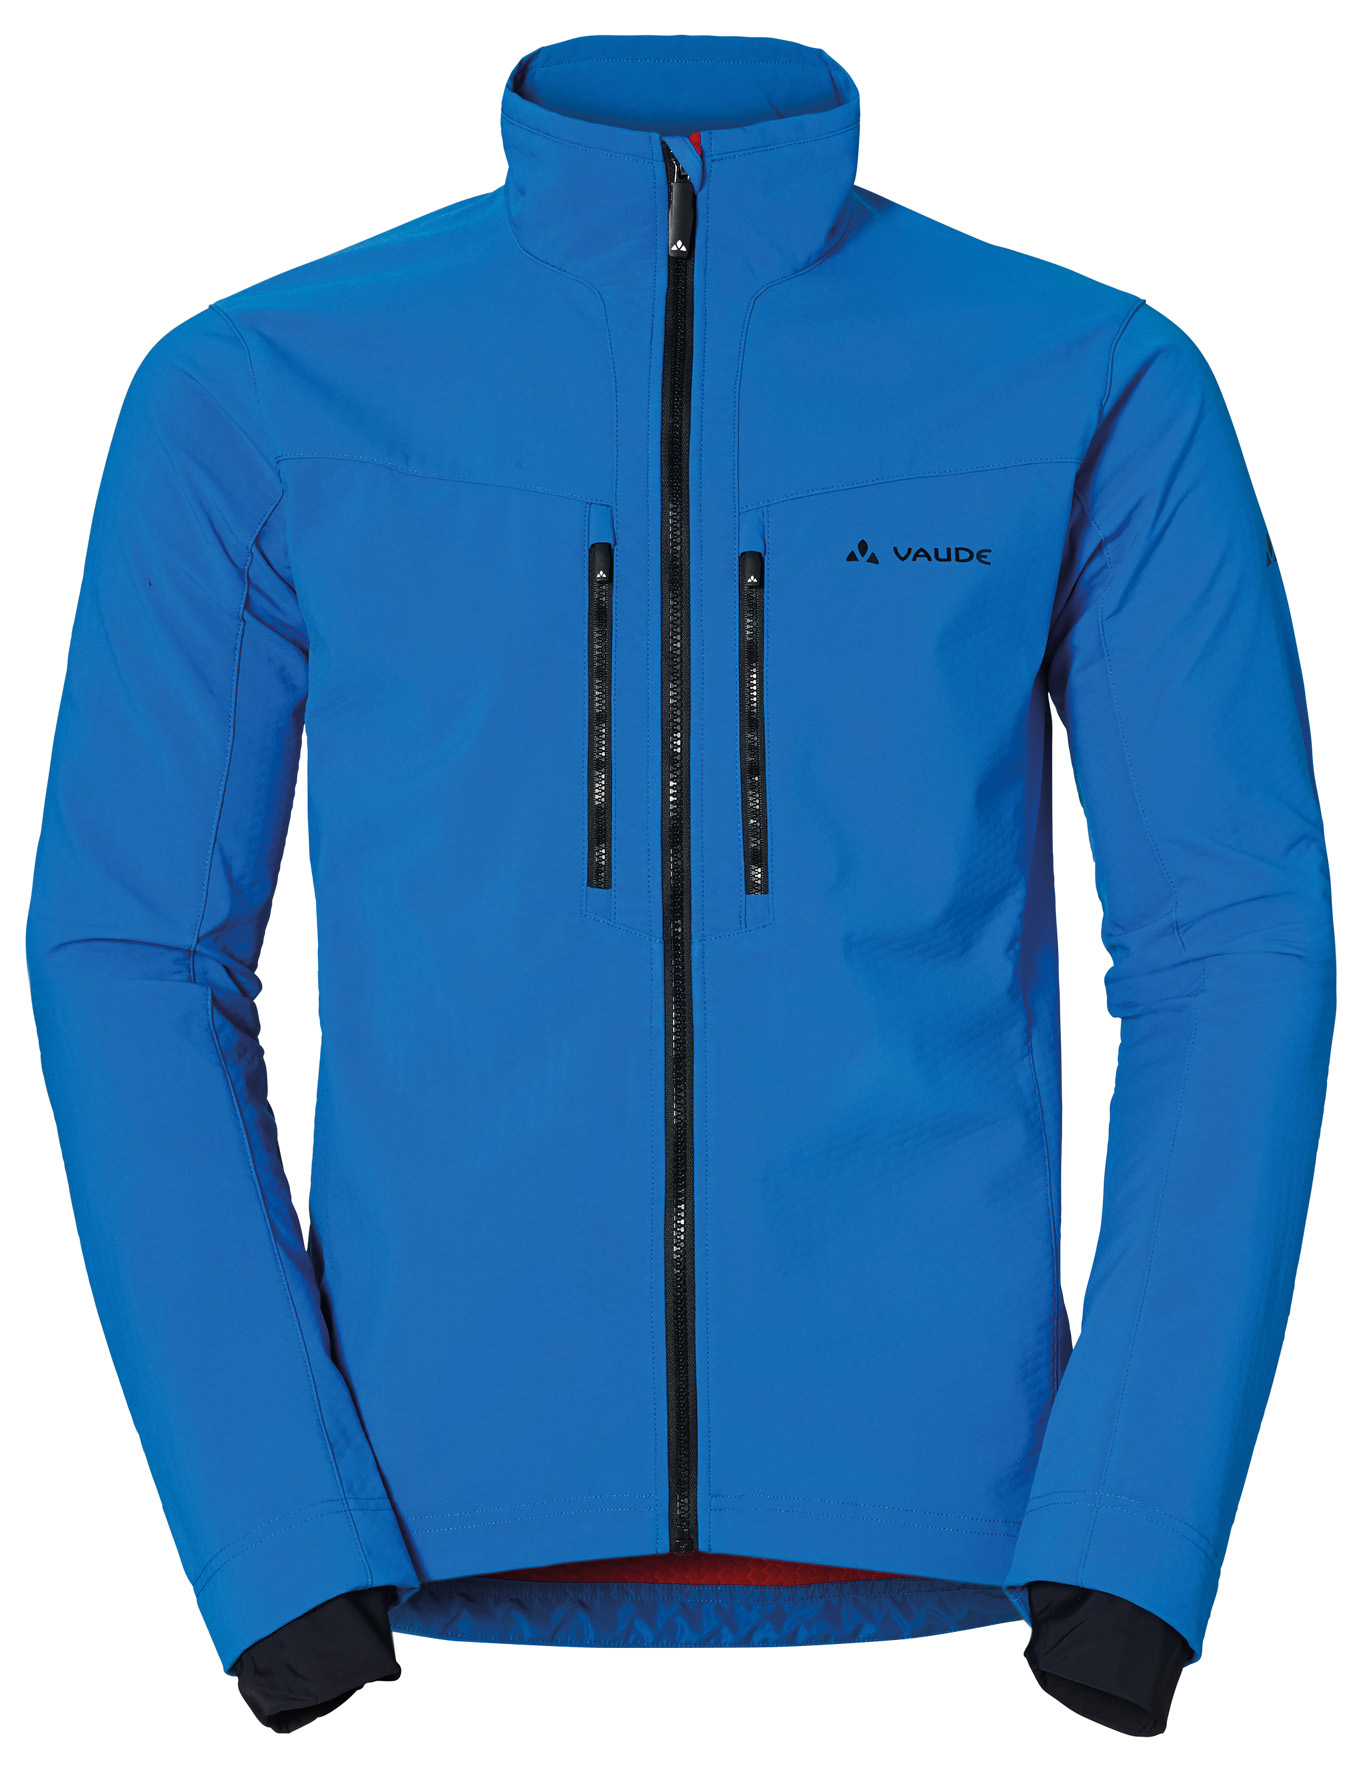 VAUDE Men´s Qimsa Softshell Jacket hydro blue Größe L - VAUDE Men´s Qimsa Softshell Jacket hydro blue Größe L